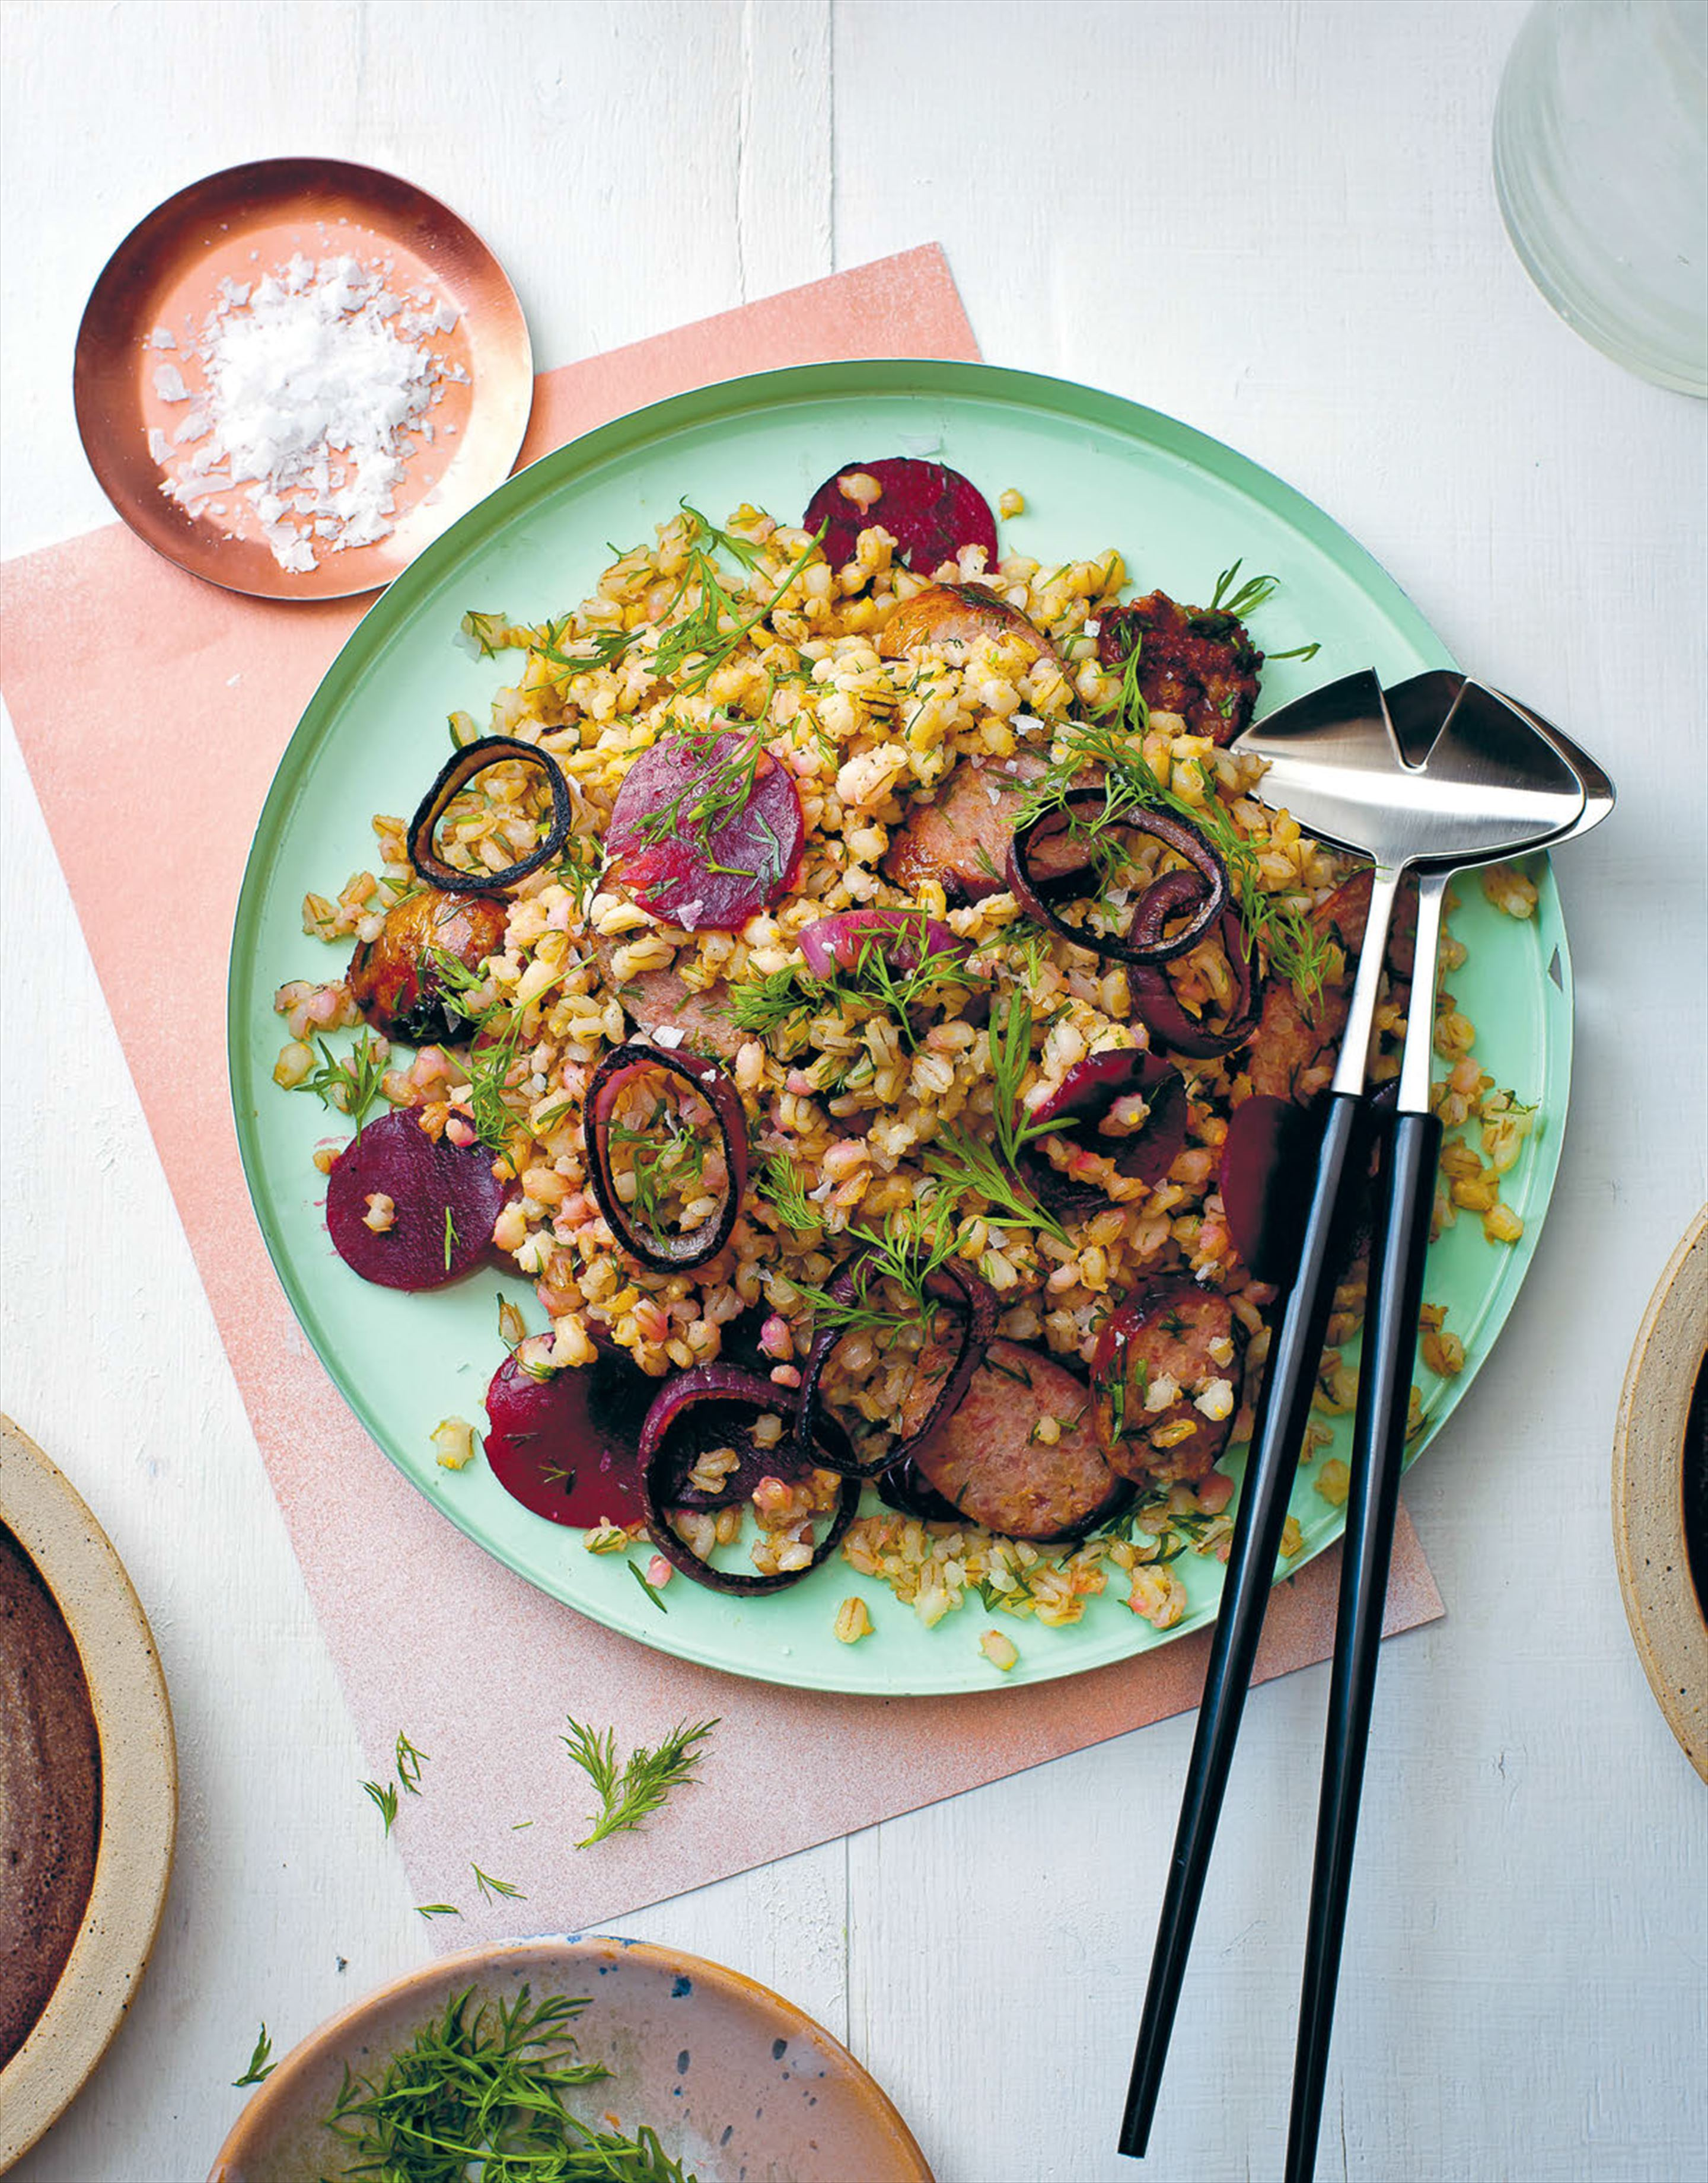 Pork, barley & beetroot salad